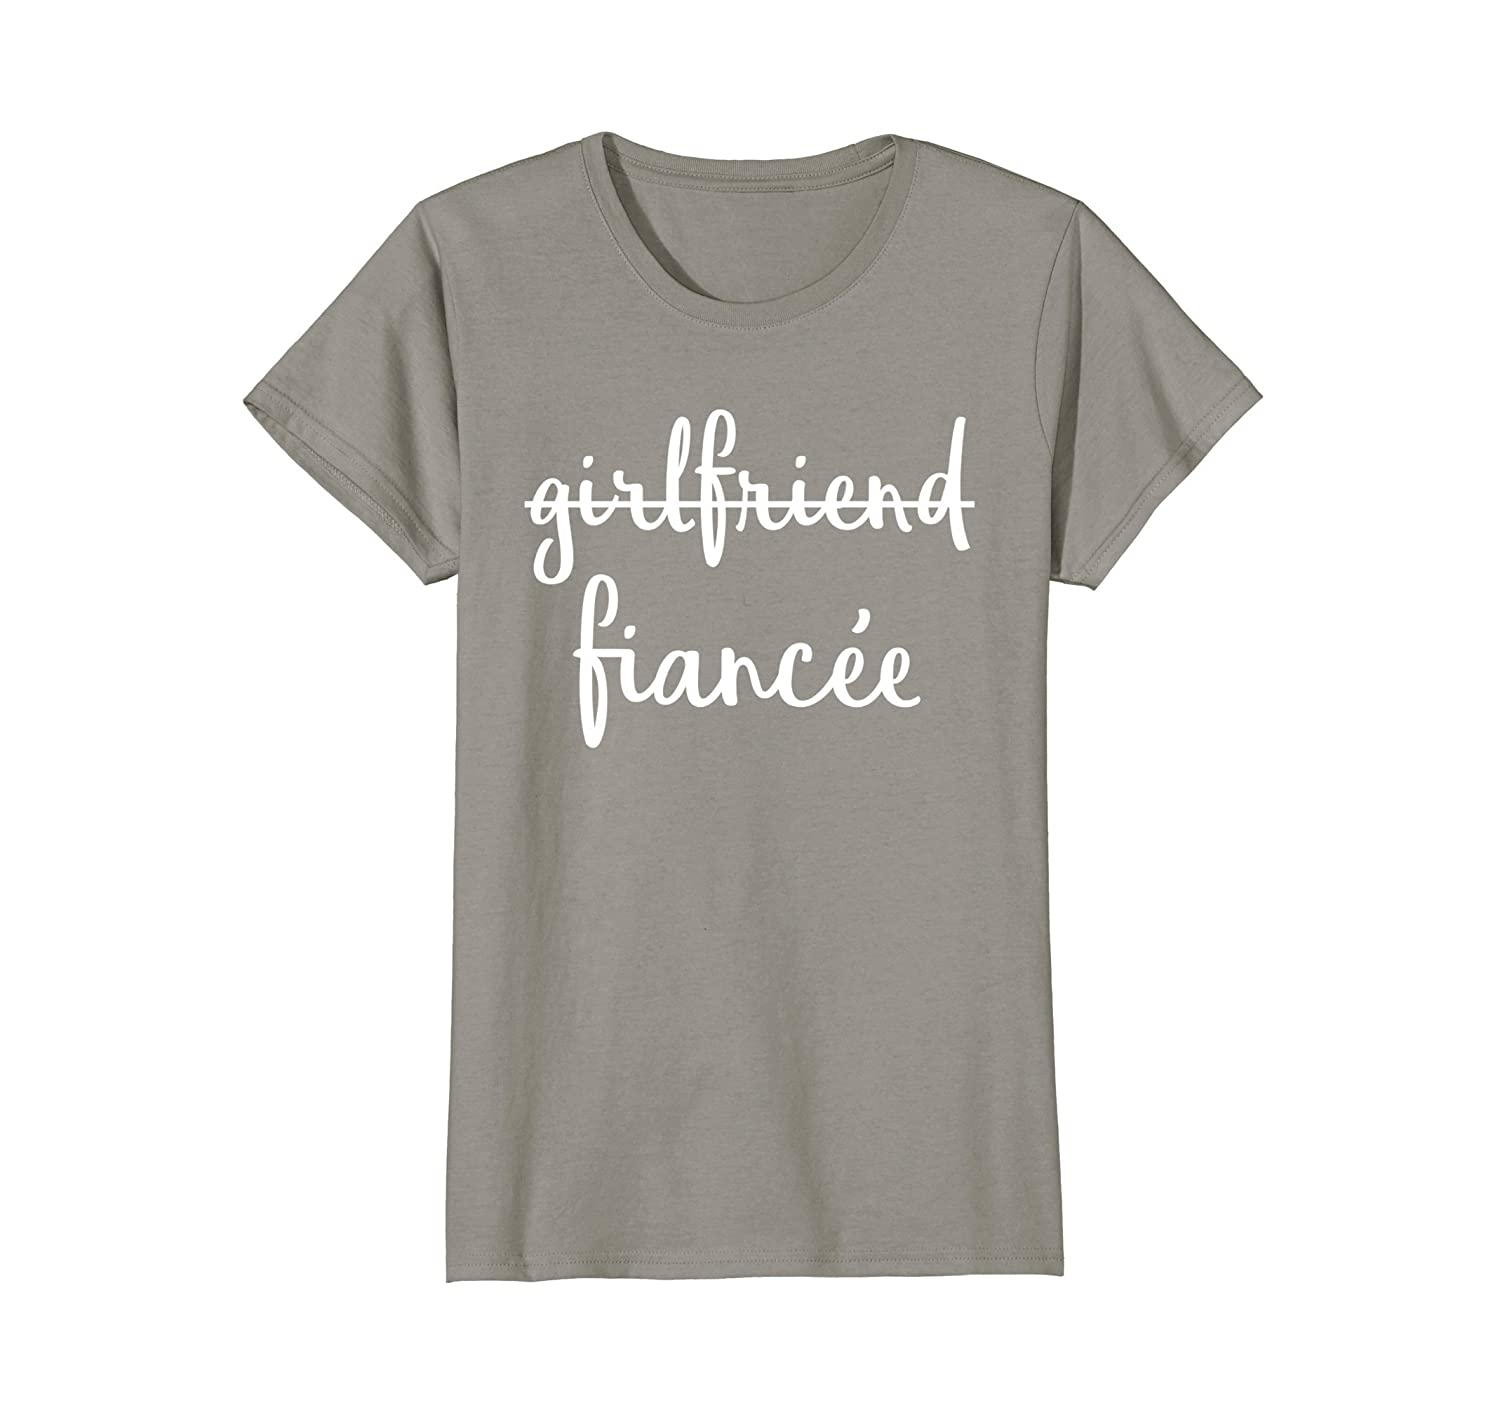 Womens Girlfriend Fiancee T Shirt, Fiance Engagement Party Tshirt-alottee gift